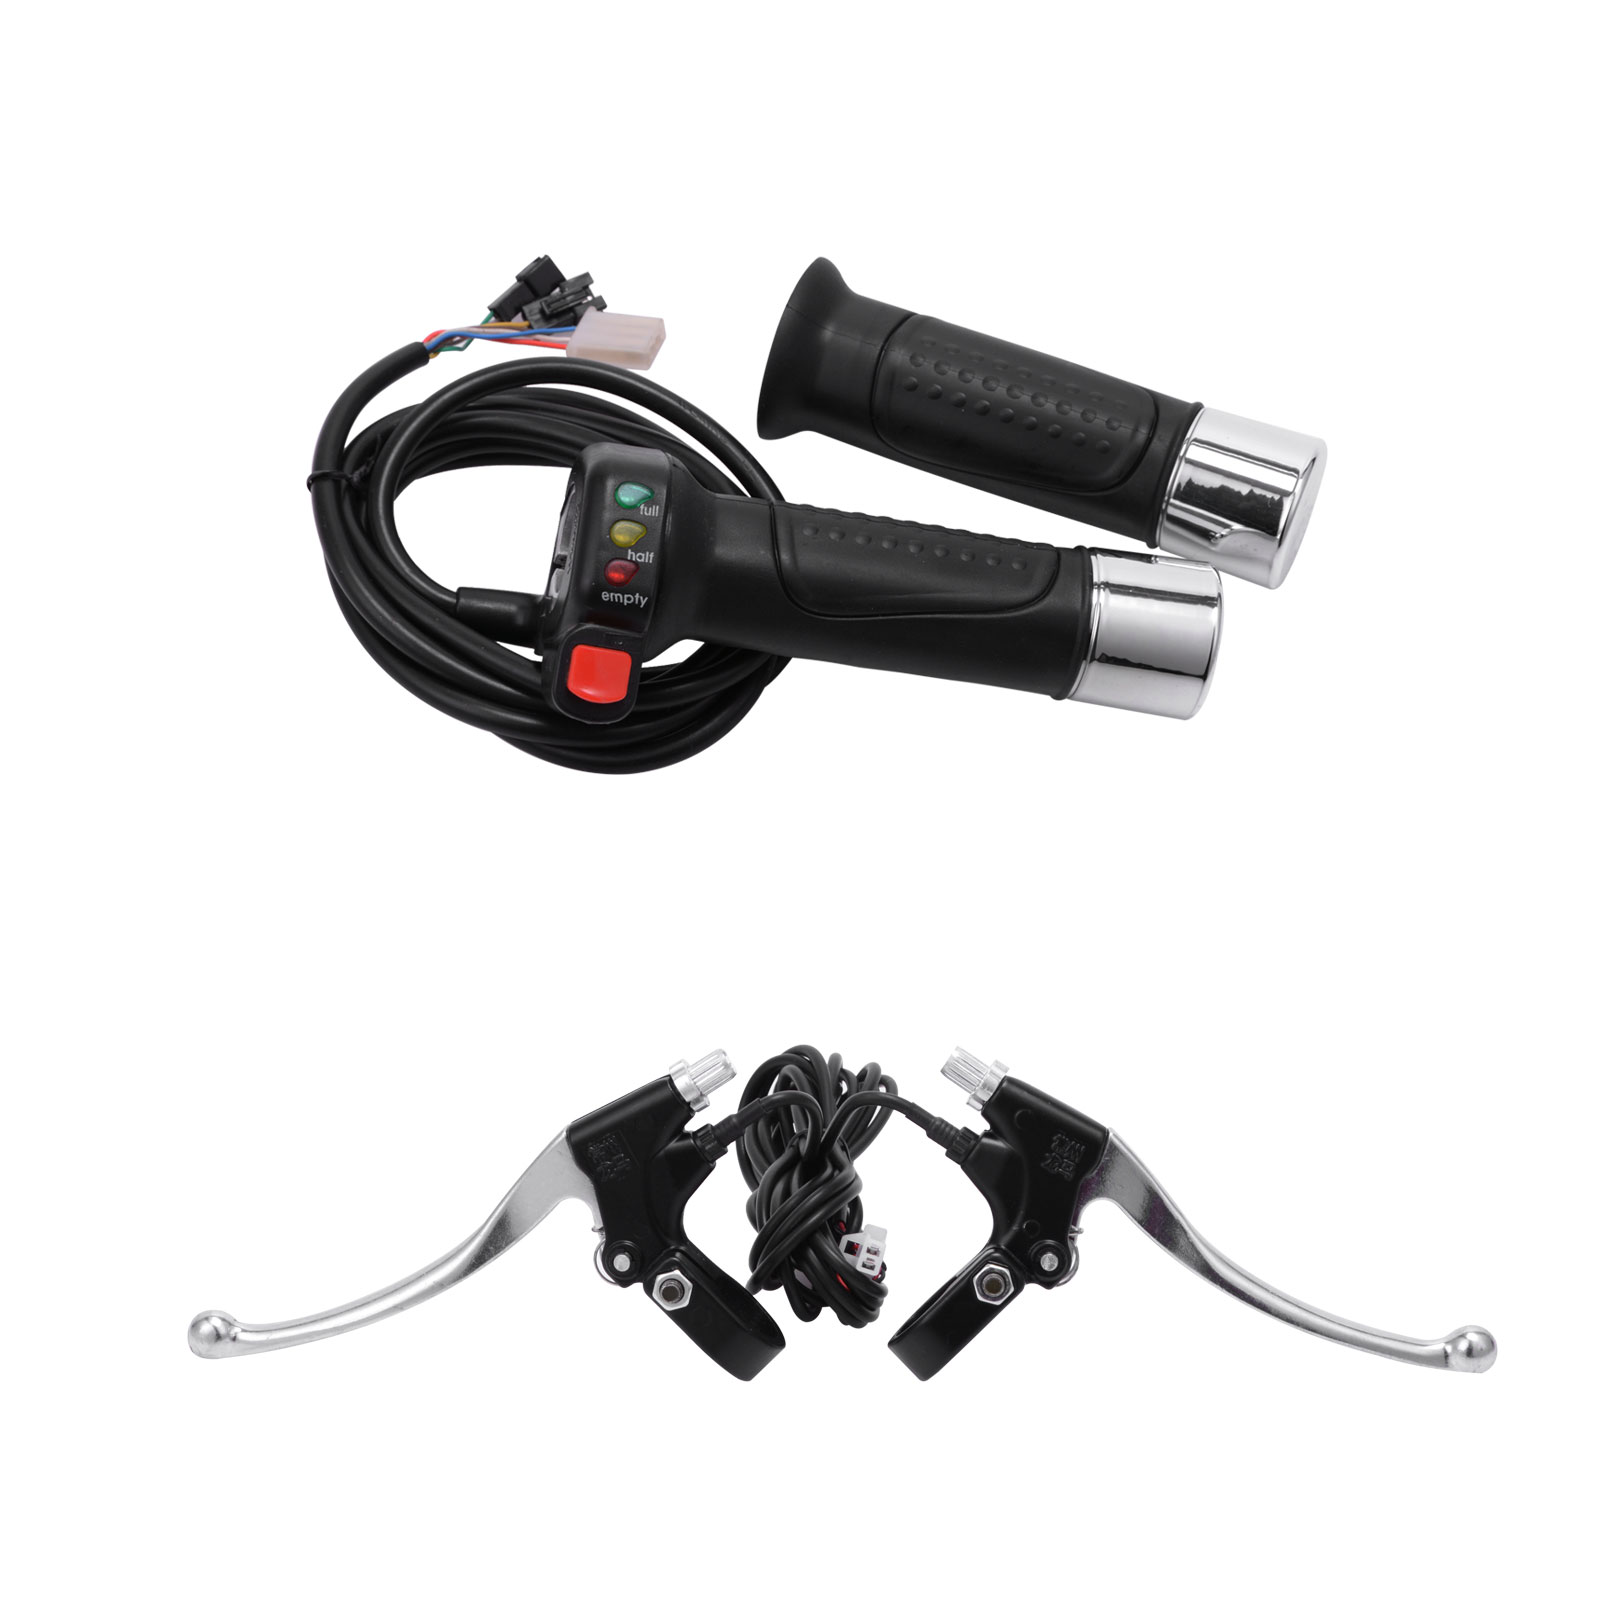 Key feature for Bicycle electric motor kits